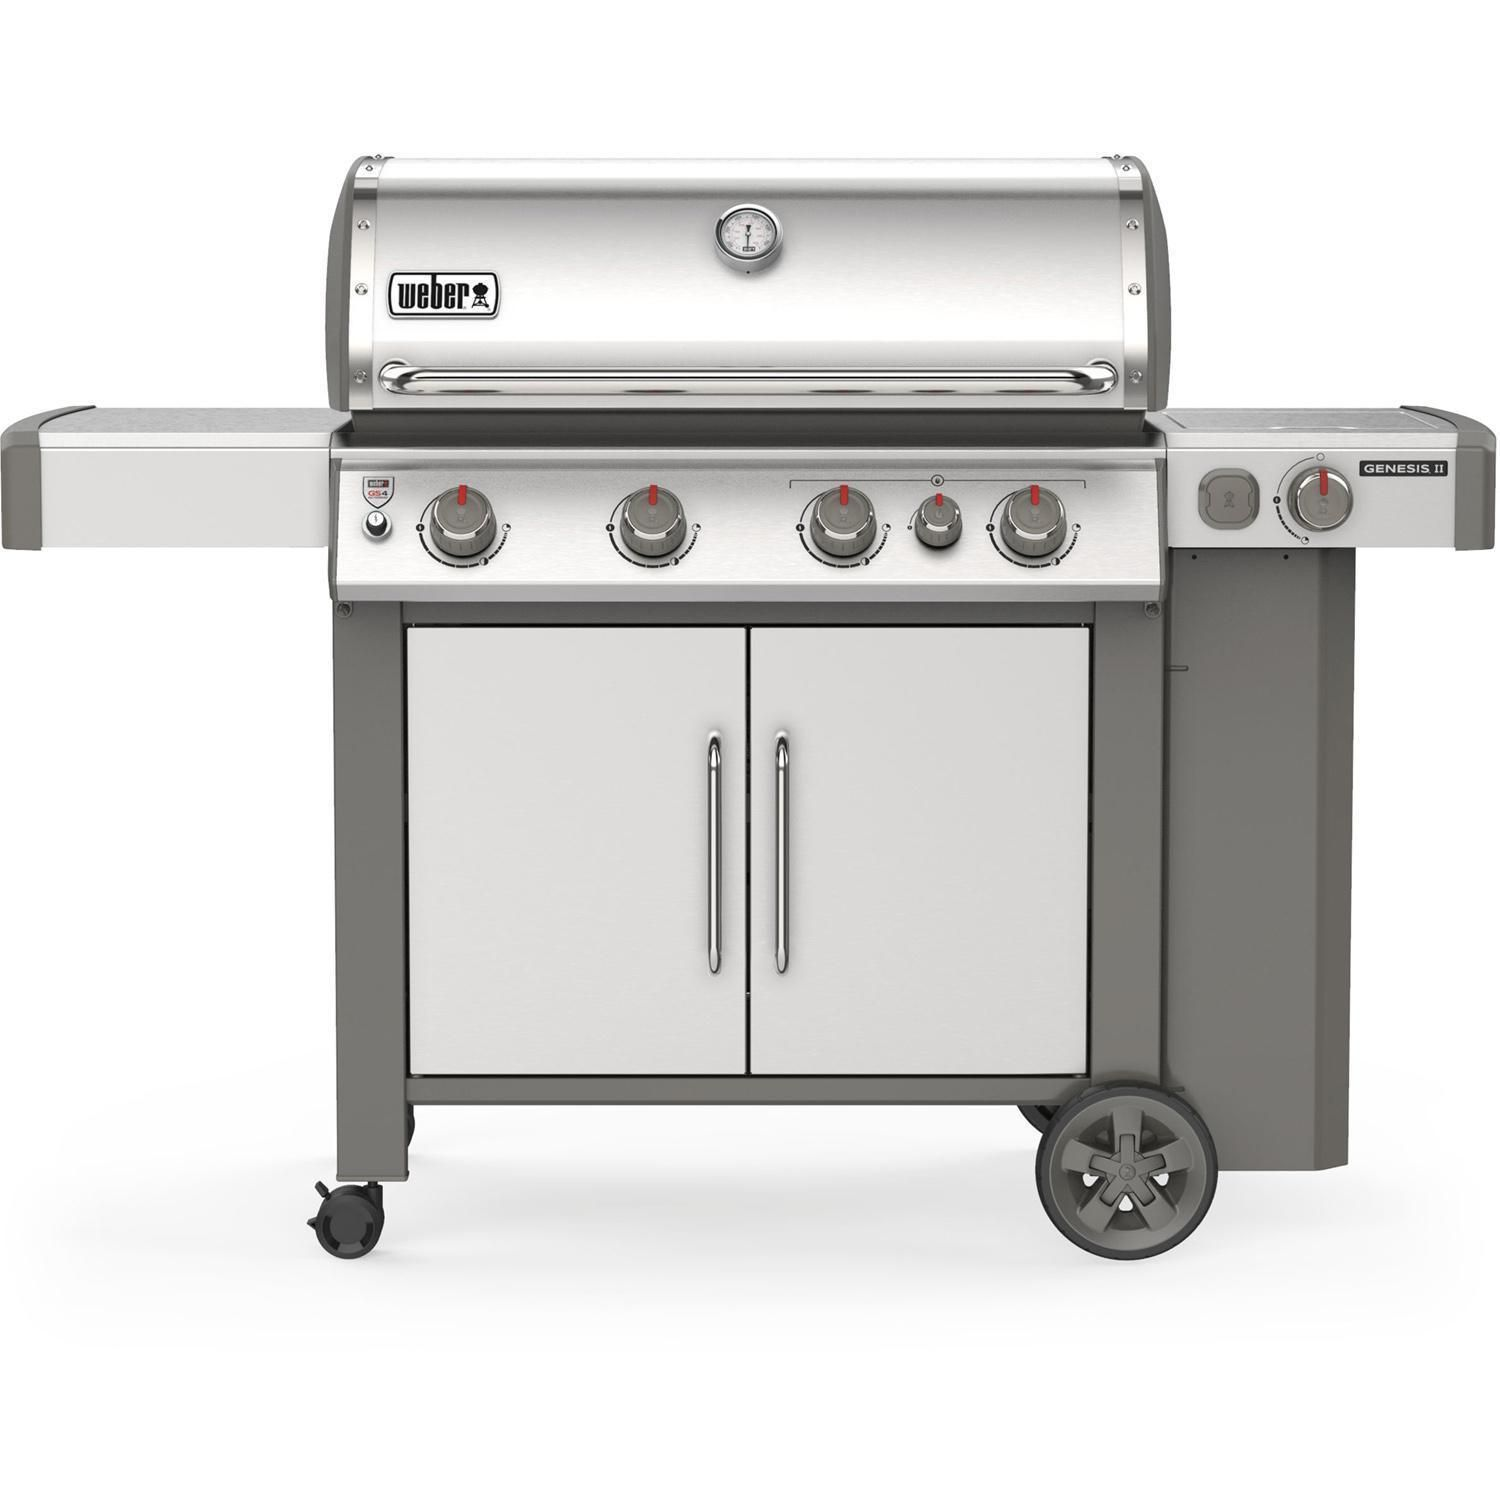 Weber 62006001 Genesis Ii S 435 Propane Grill Stainless Steel Bbqguys In 2020 Weber Gas Grills Propane Grill Backyard Grilling